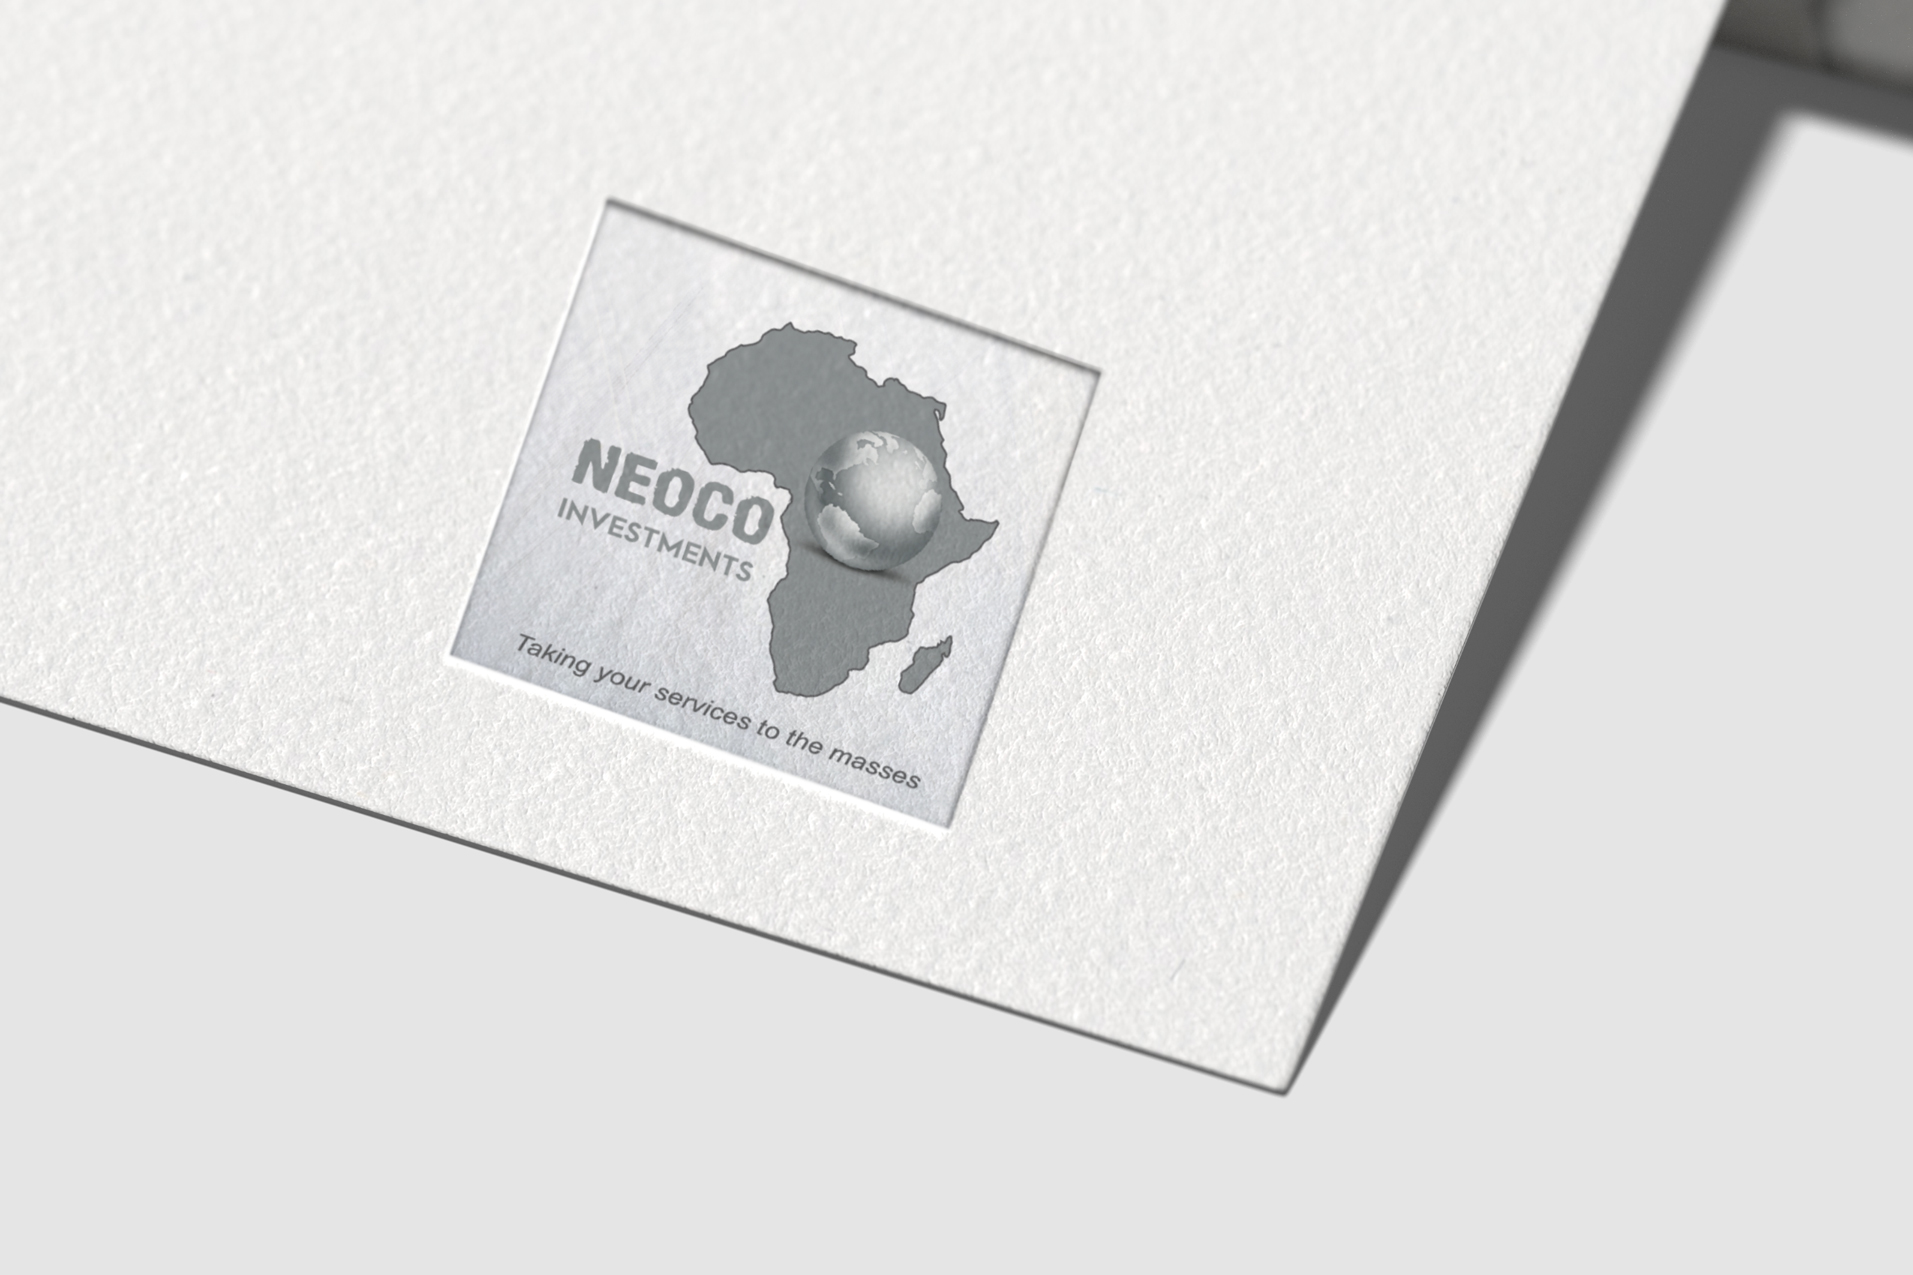 Neoco-Investments-logo-on-paper